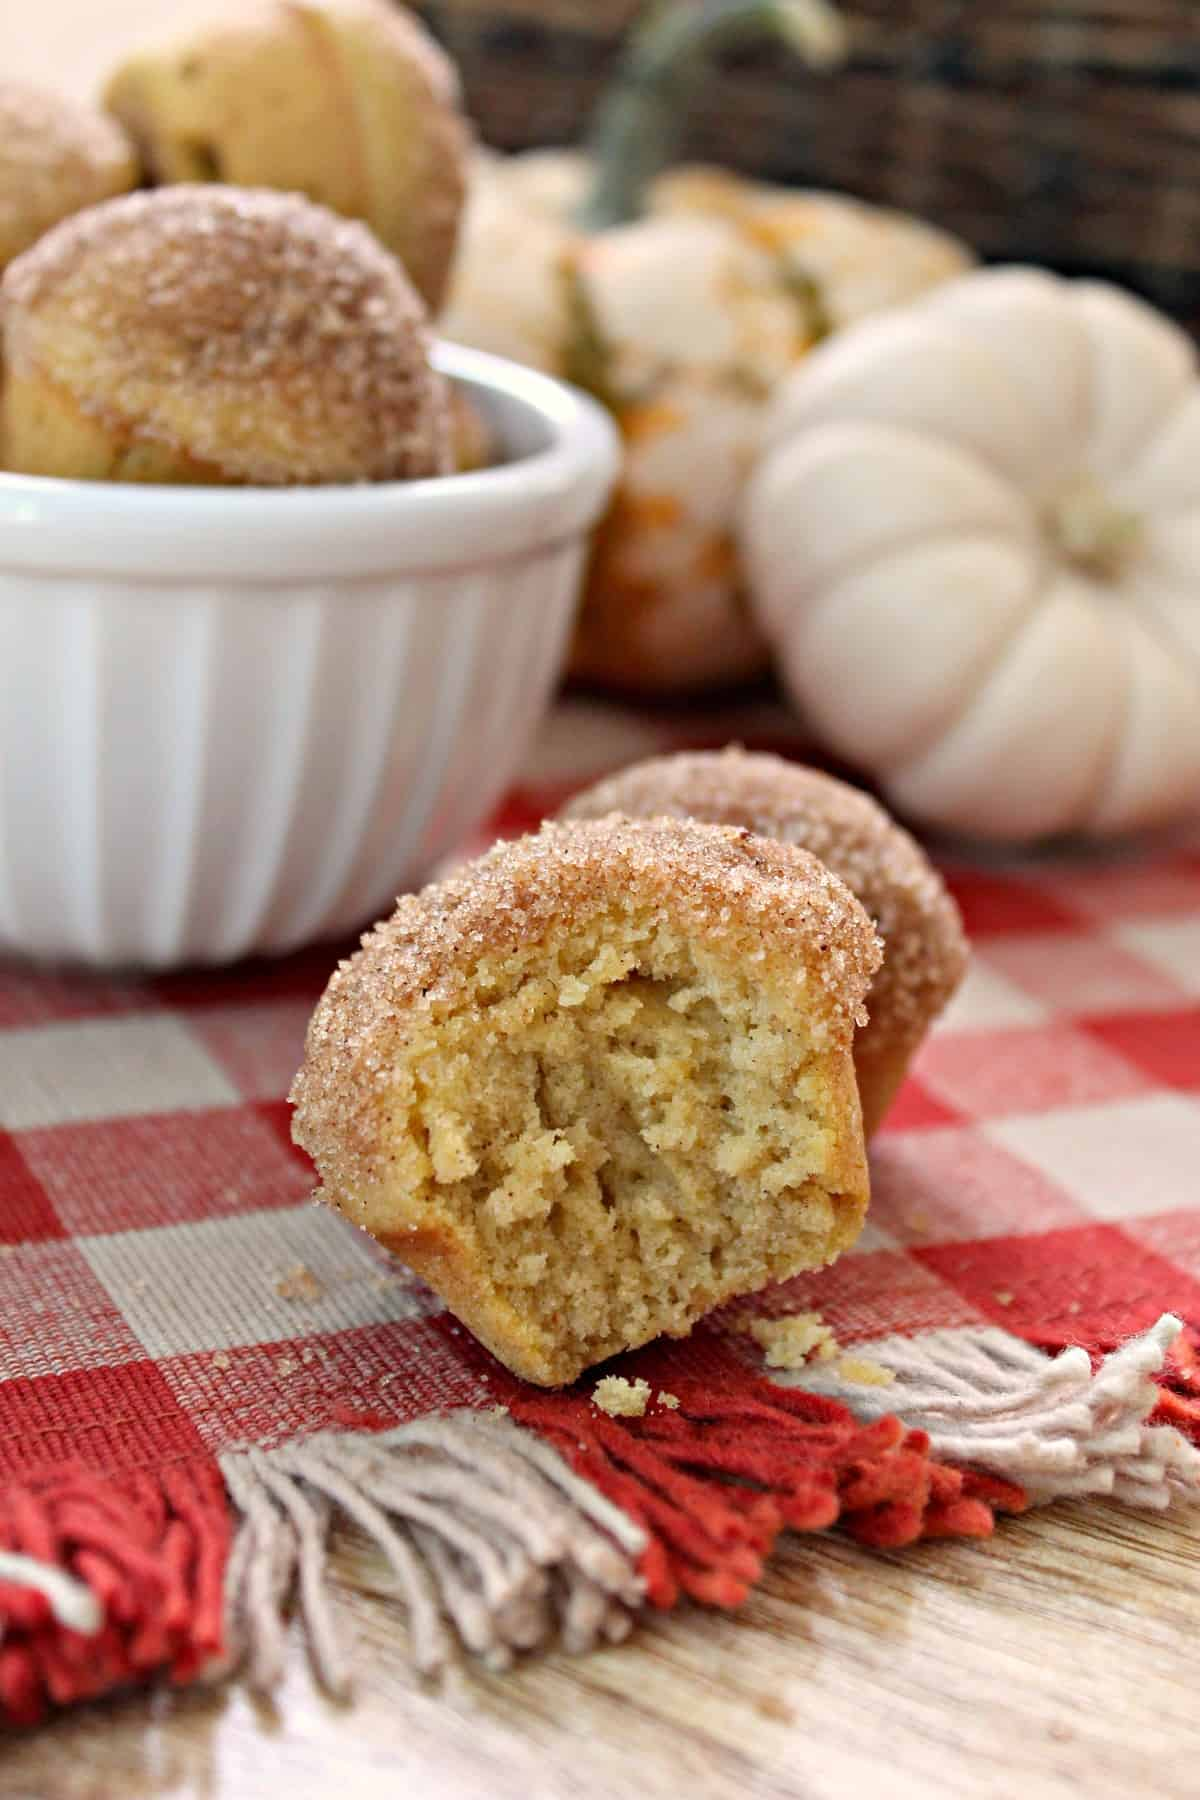 Mini Pumpkin Spice Donut Muffins! These petite pumpkin spice muffins imitate a breakfast favorite with a sugar and spice-encrusted dome. All of the flavors of fall rolled up into a tasty breakfast or brunch treat!